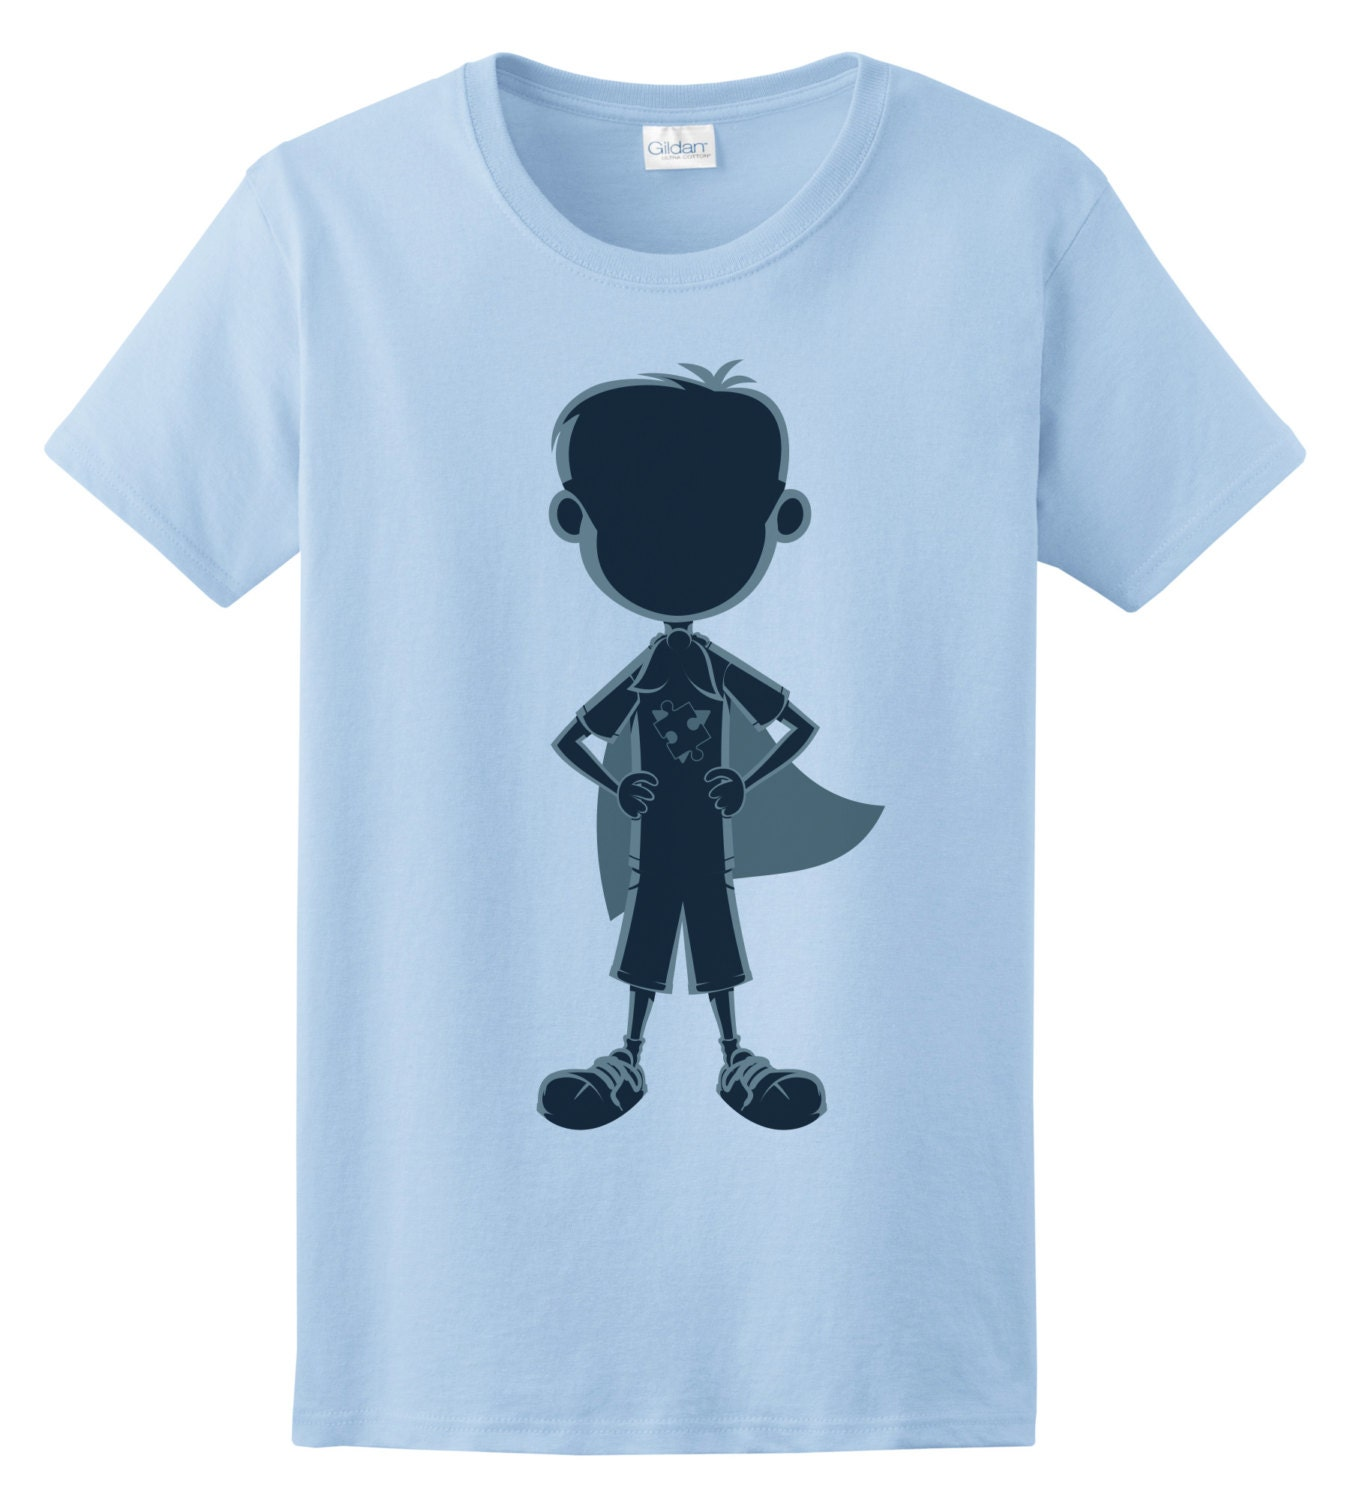 Autism superhero boy t shirt Boys superhero t shirts